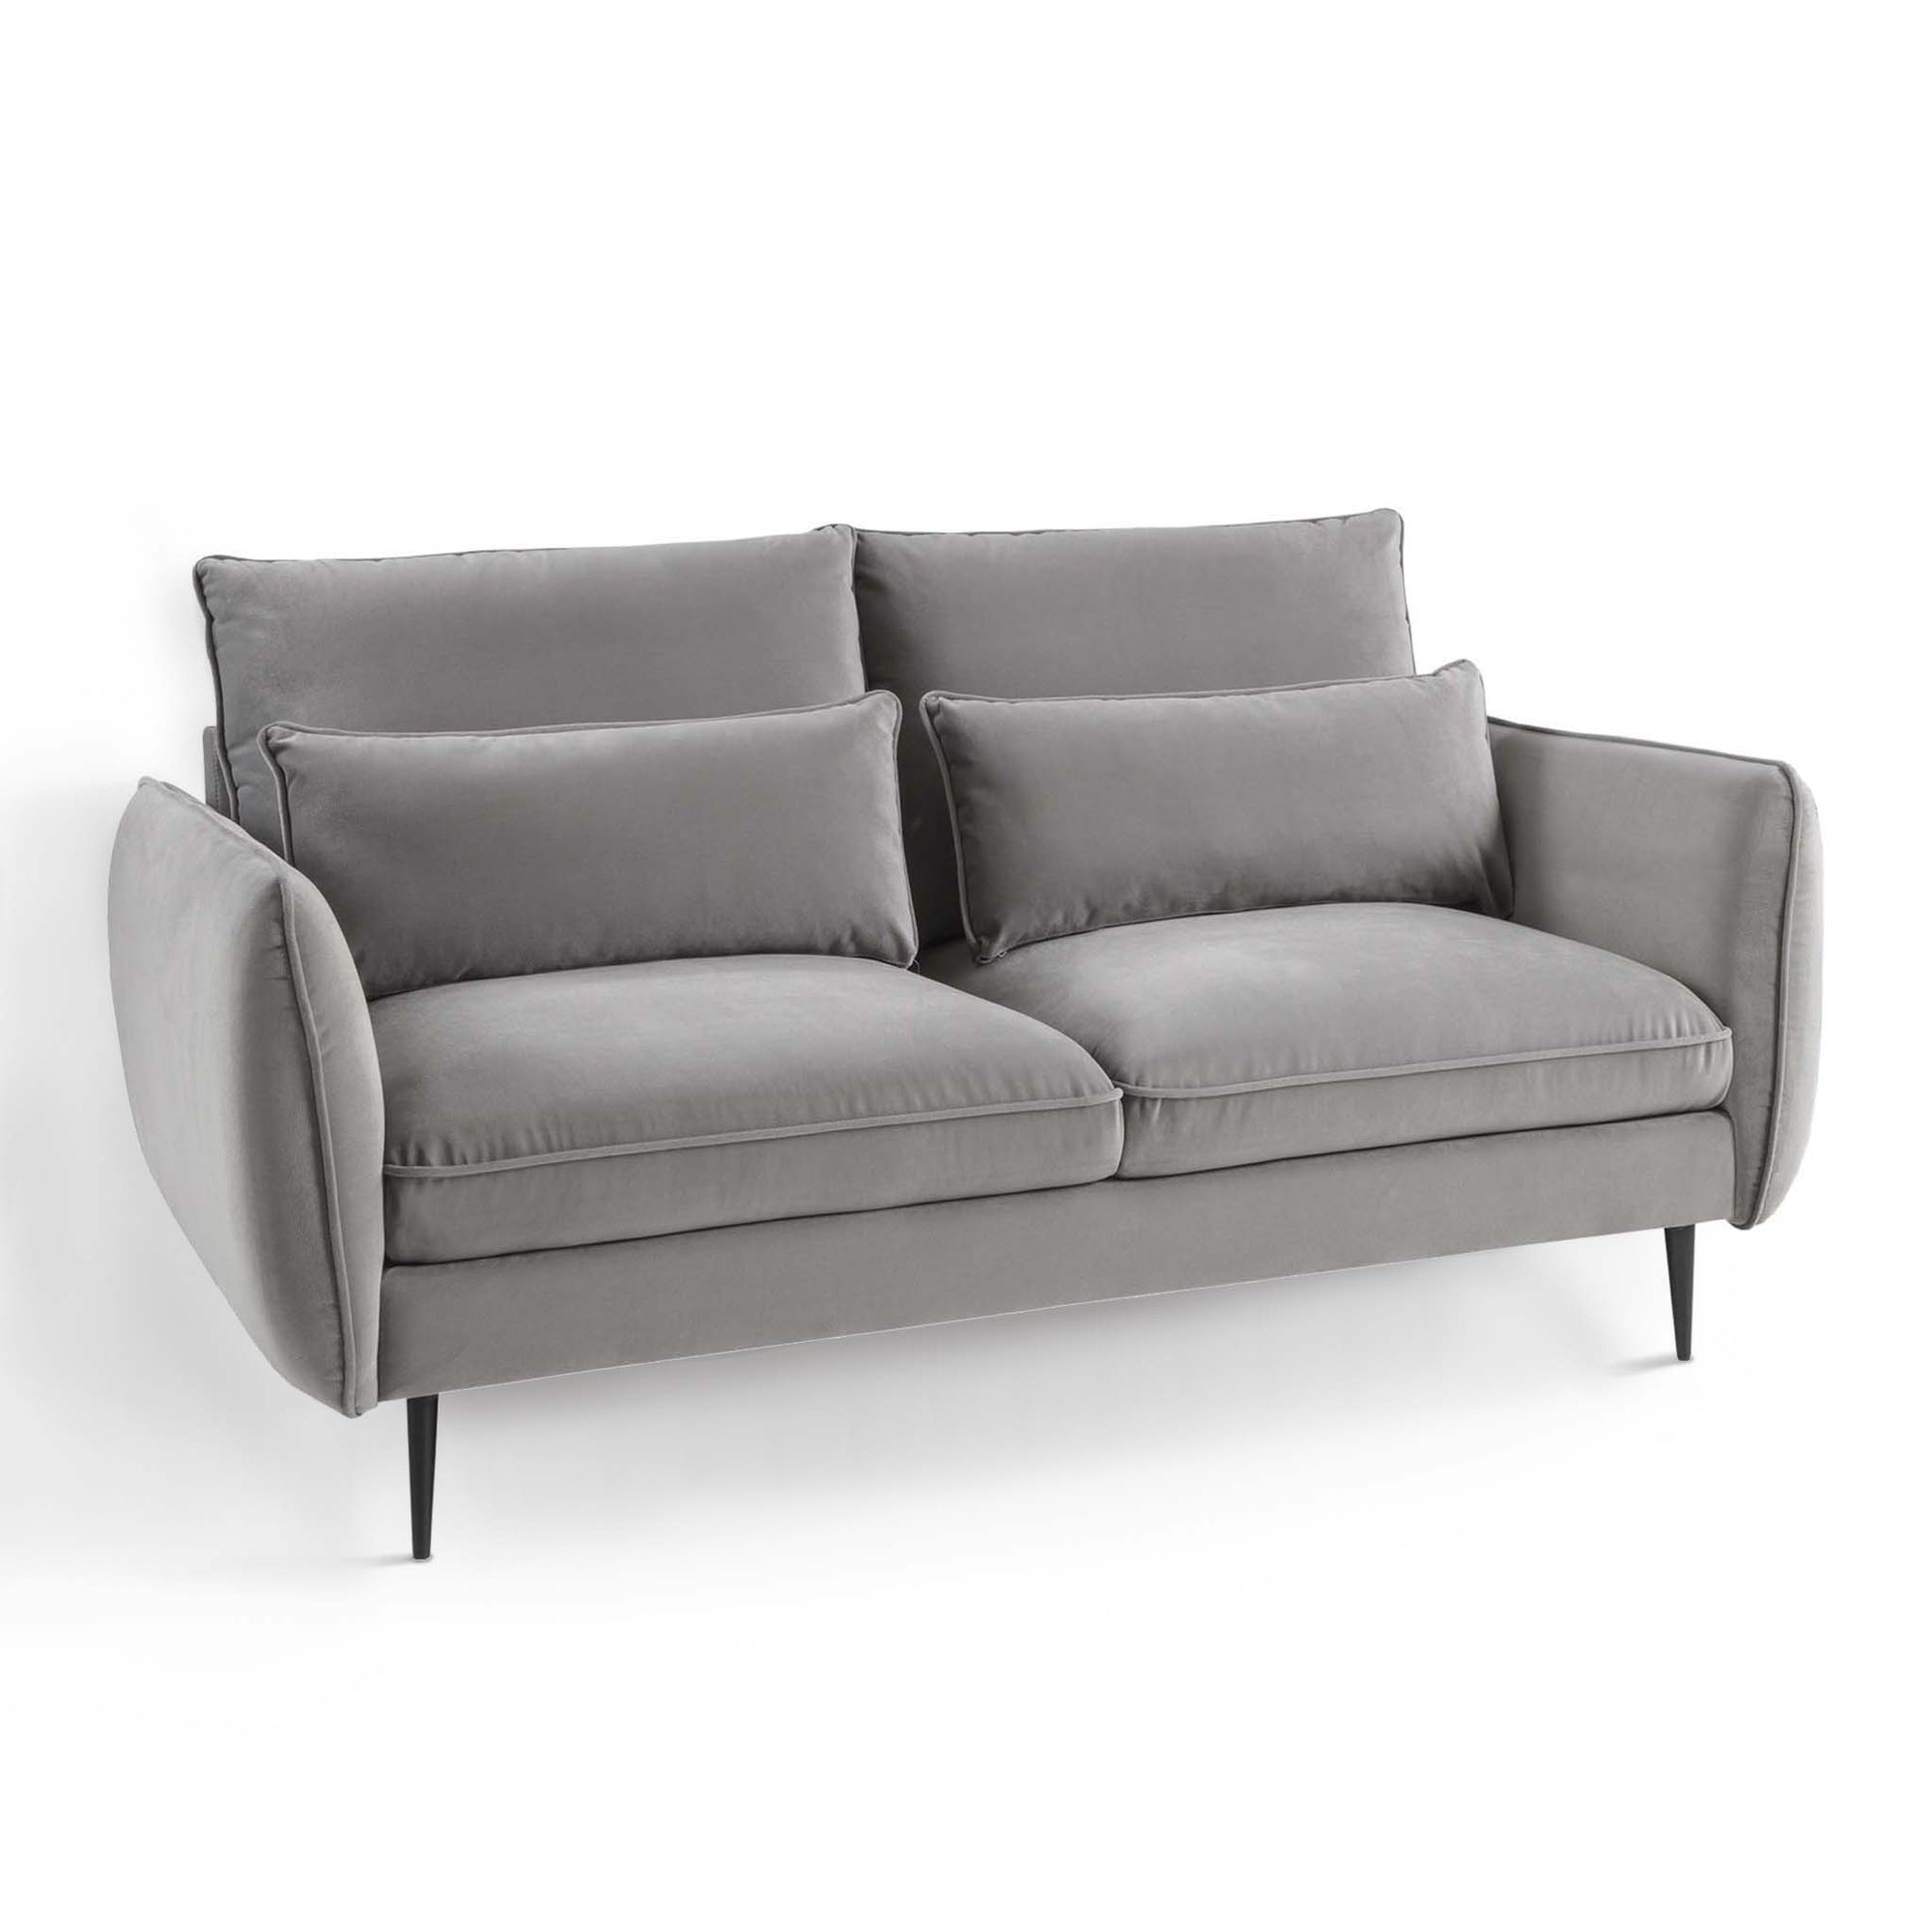 Rhonda Grey Velvet 2 Seater Sofa  from Roseland Furniture